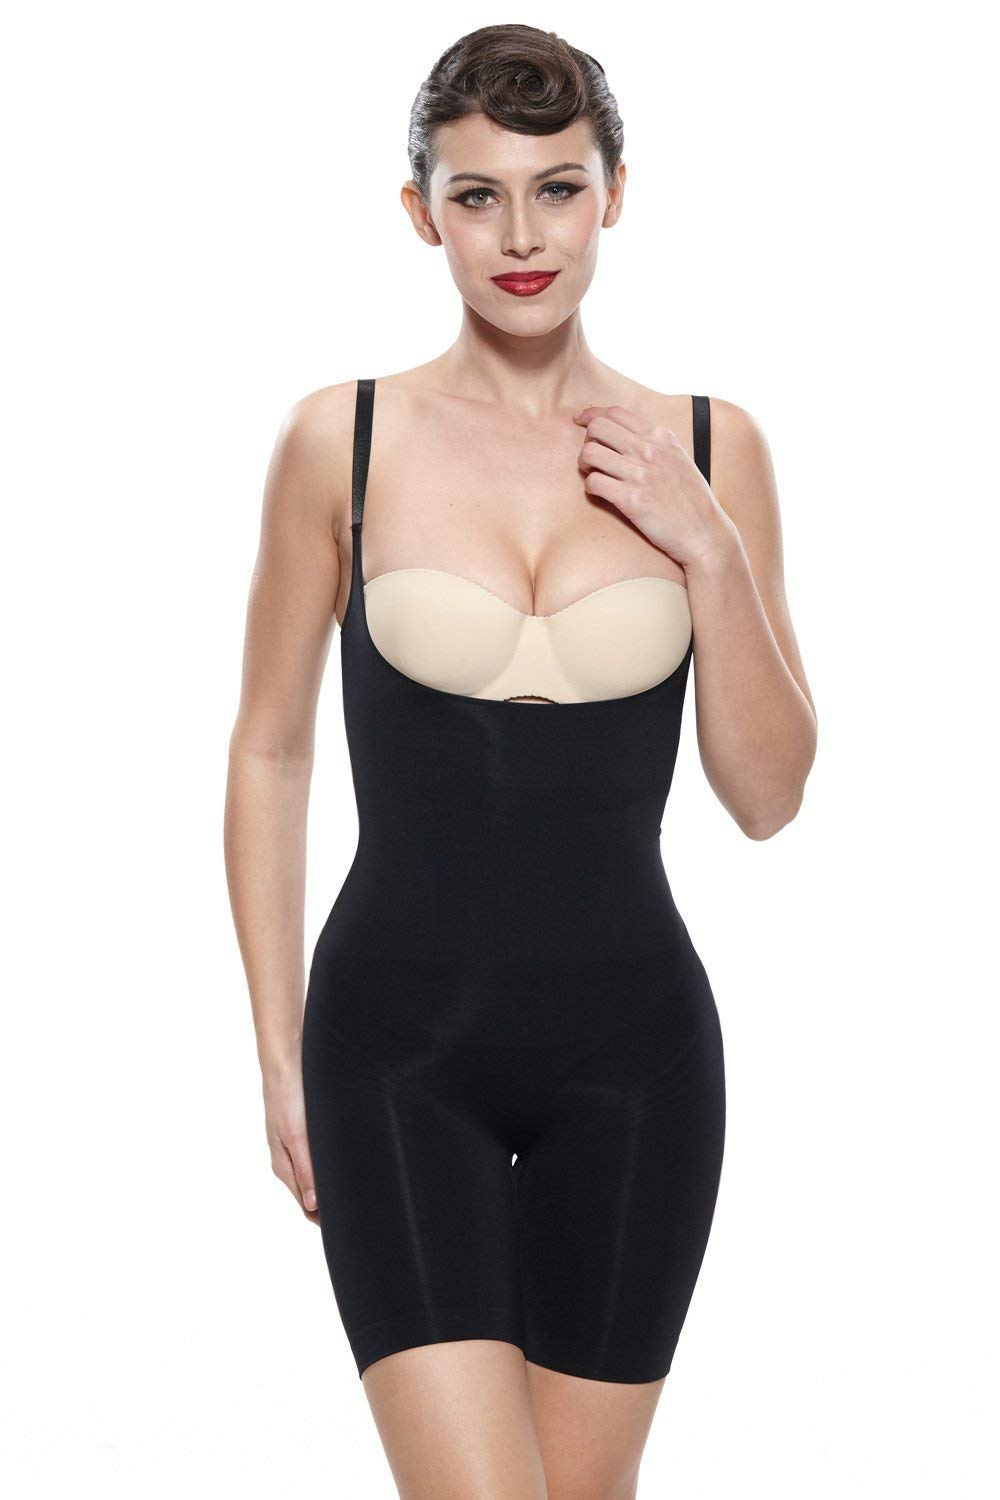 Selecting The Most Appropriate Body Shaper